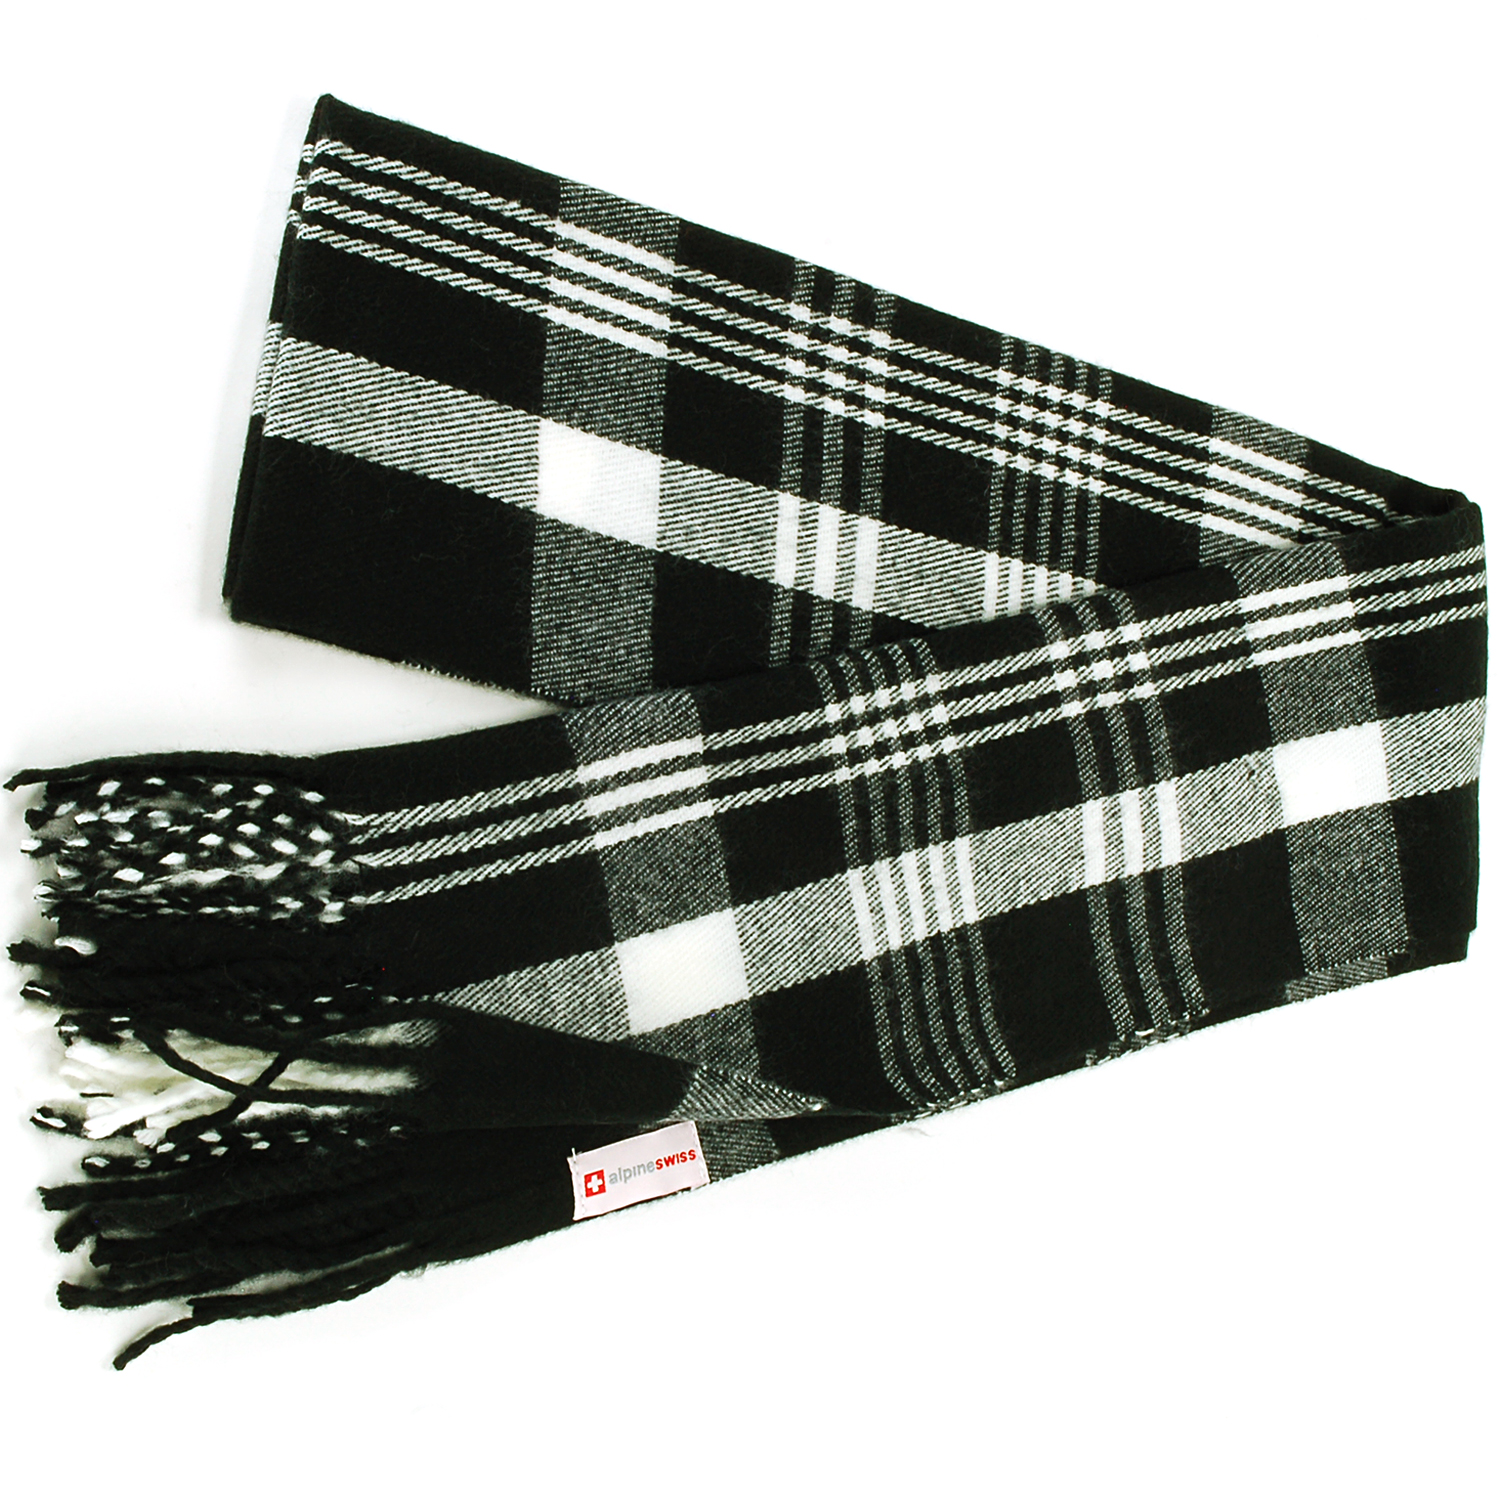 Alpine-Swiss-Mens-Scarf-Softer-Than-Cashmere-Scarves-Plaids-Womens-Winter-Shawl thumbnail 14